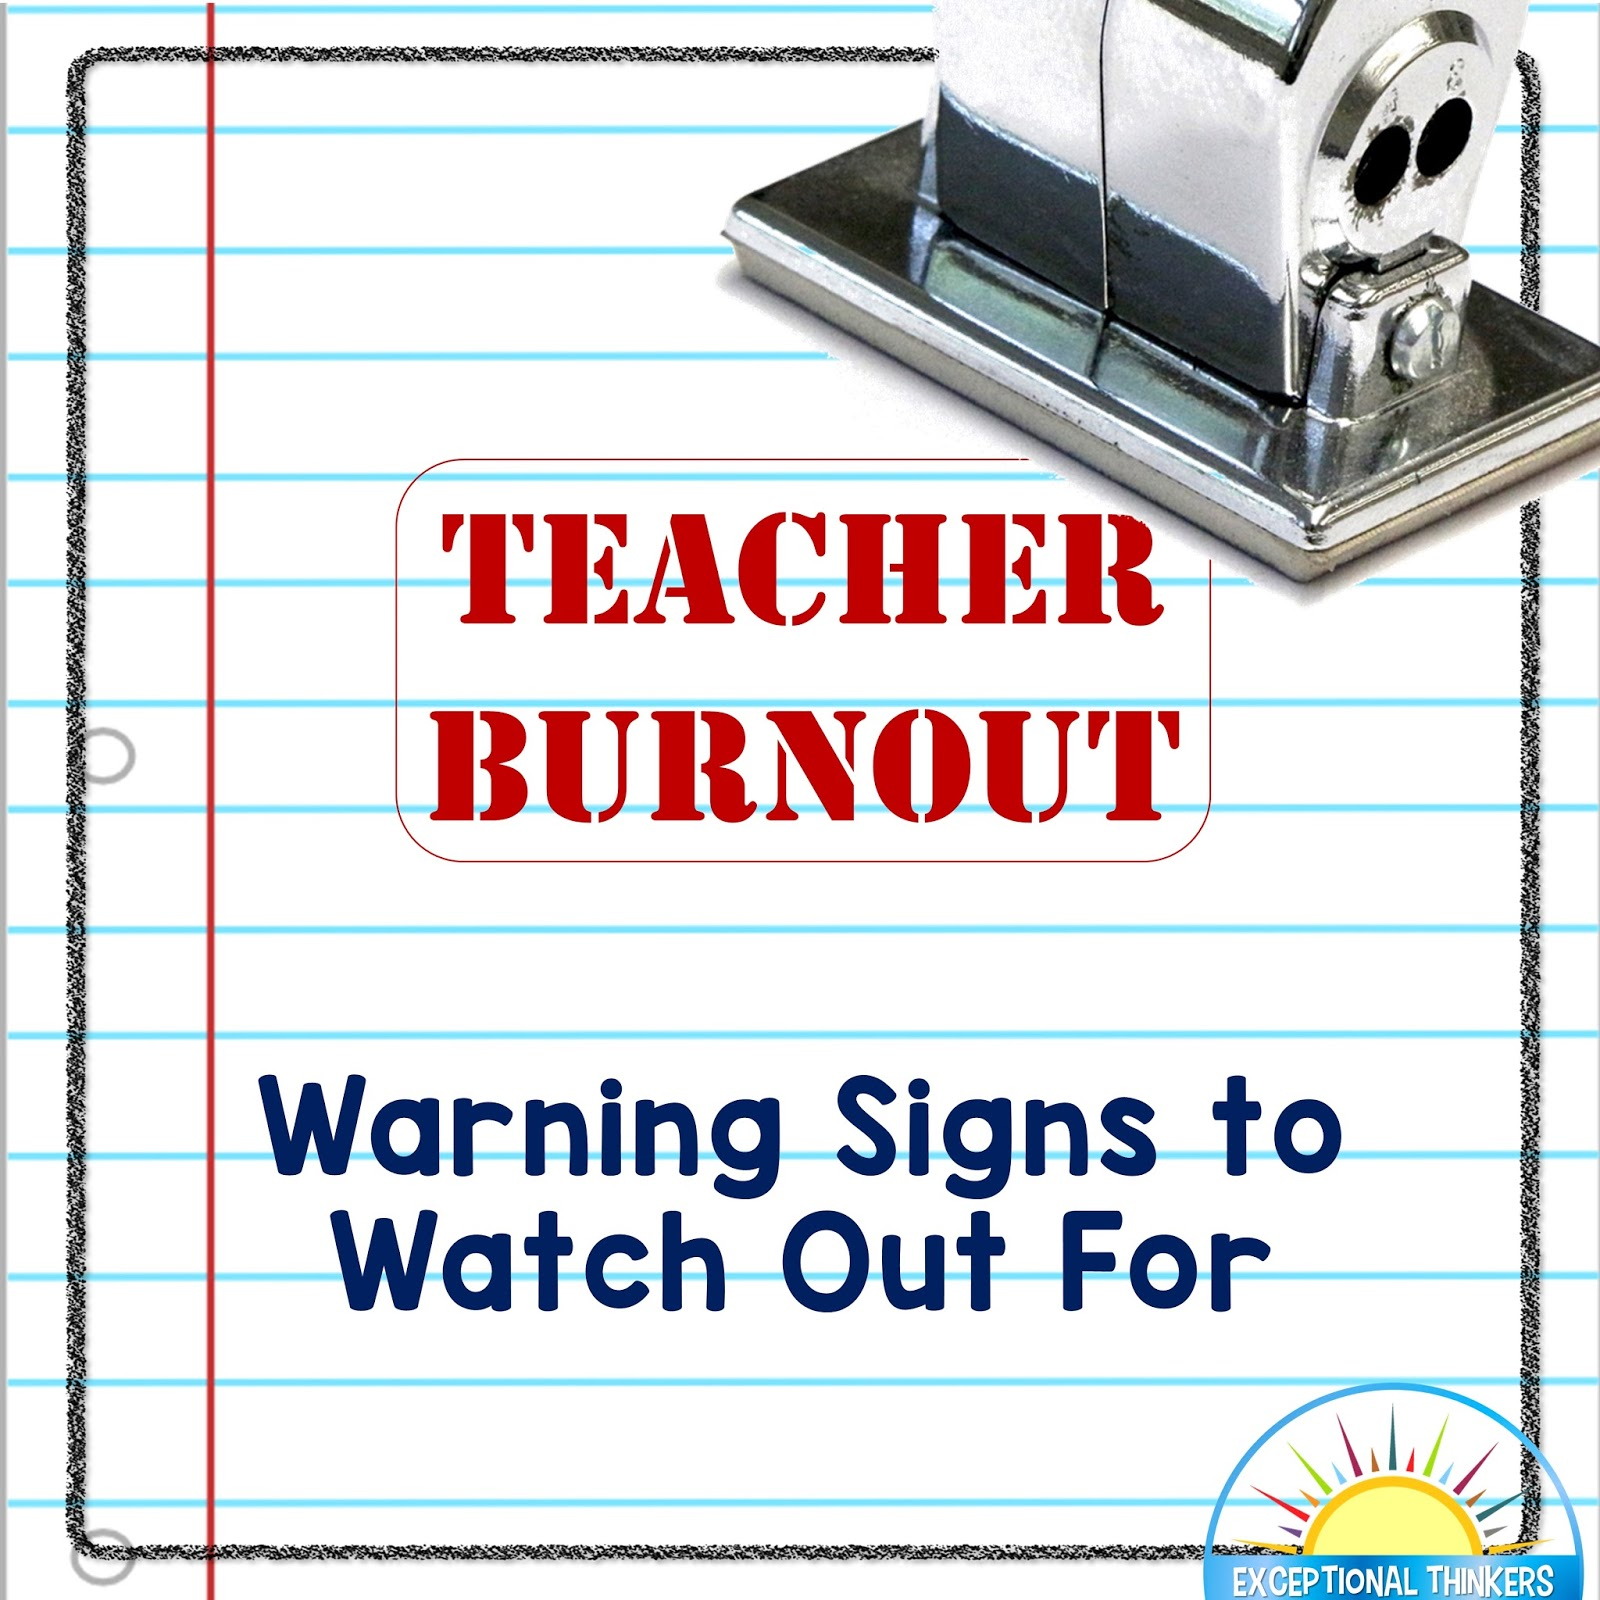 Teacher Burnout Warning Signs You Need To Watch Out For. Mall Stickers. Artery Signs Of Stroke. Three Proud Person Murals. Kid Lettering. Bears Logo. Huge Stickers. Double Stickers. Bathroom Murals